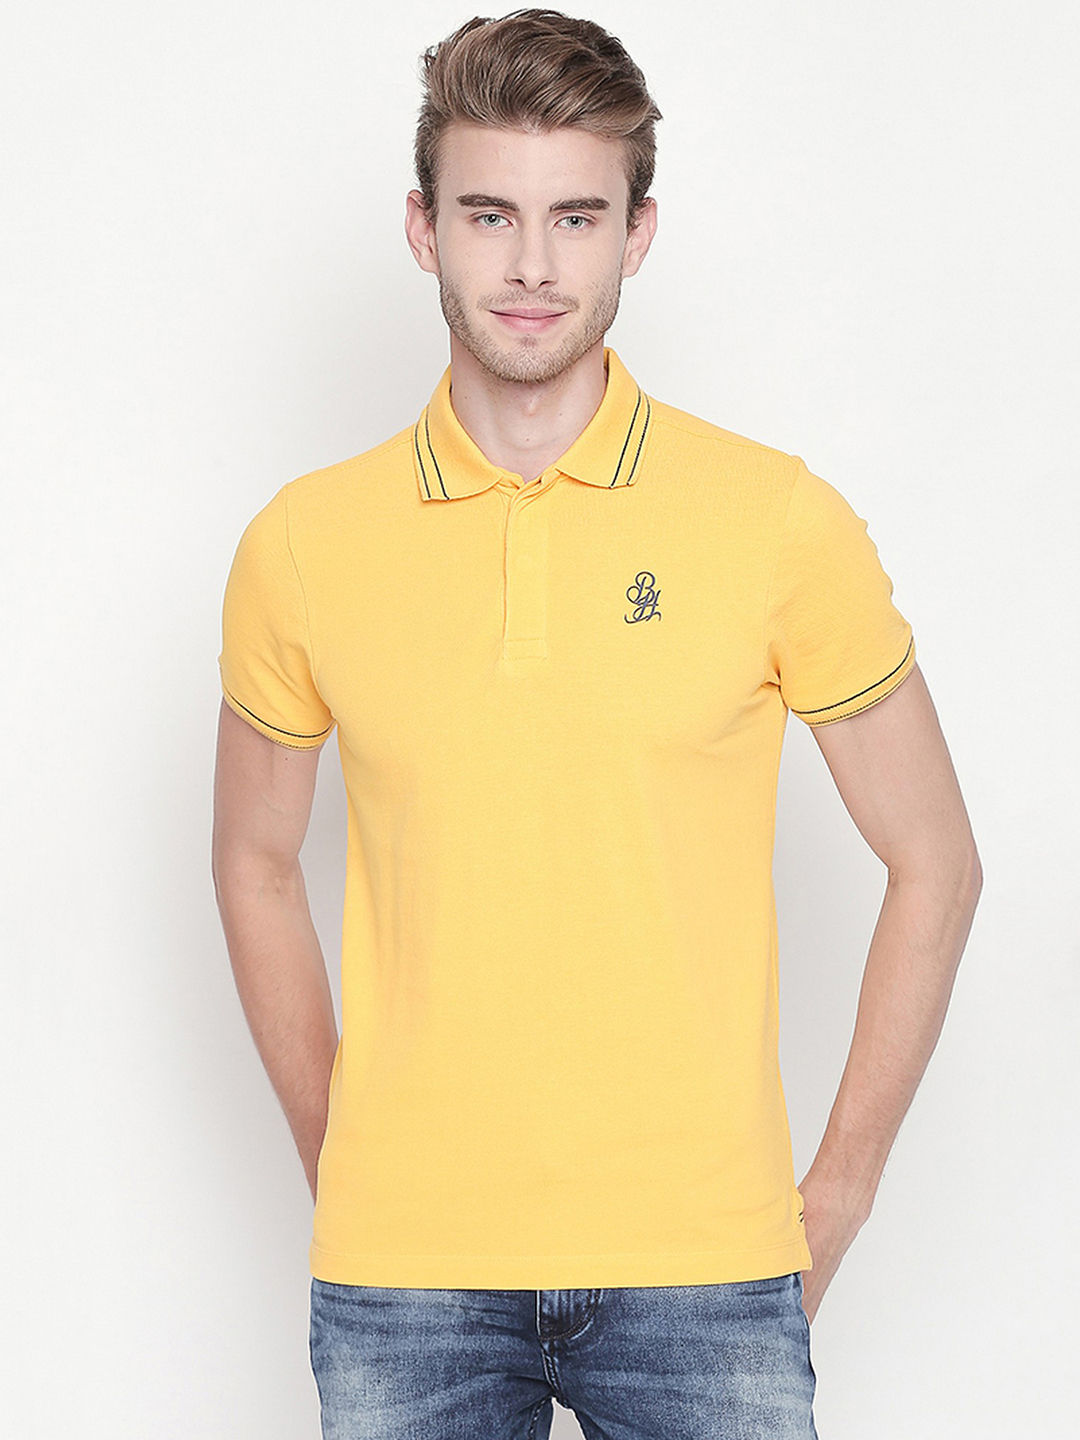 YELLOW SOLID POLO T-SHIRT